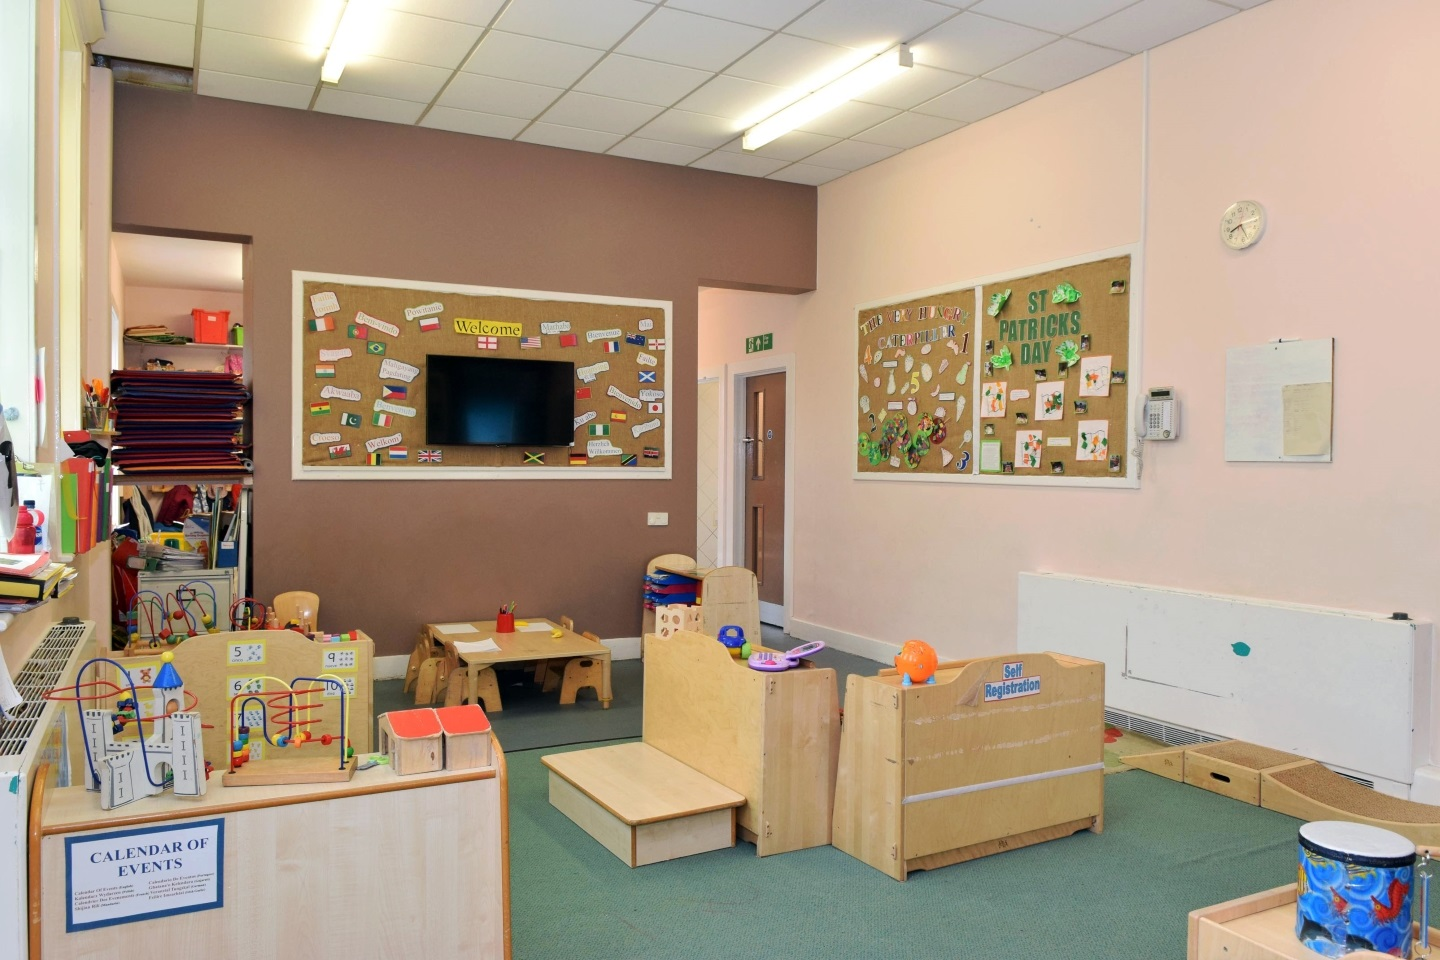 Bright Horizons Balham Day Nursery and Preschool London 03339 201130